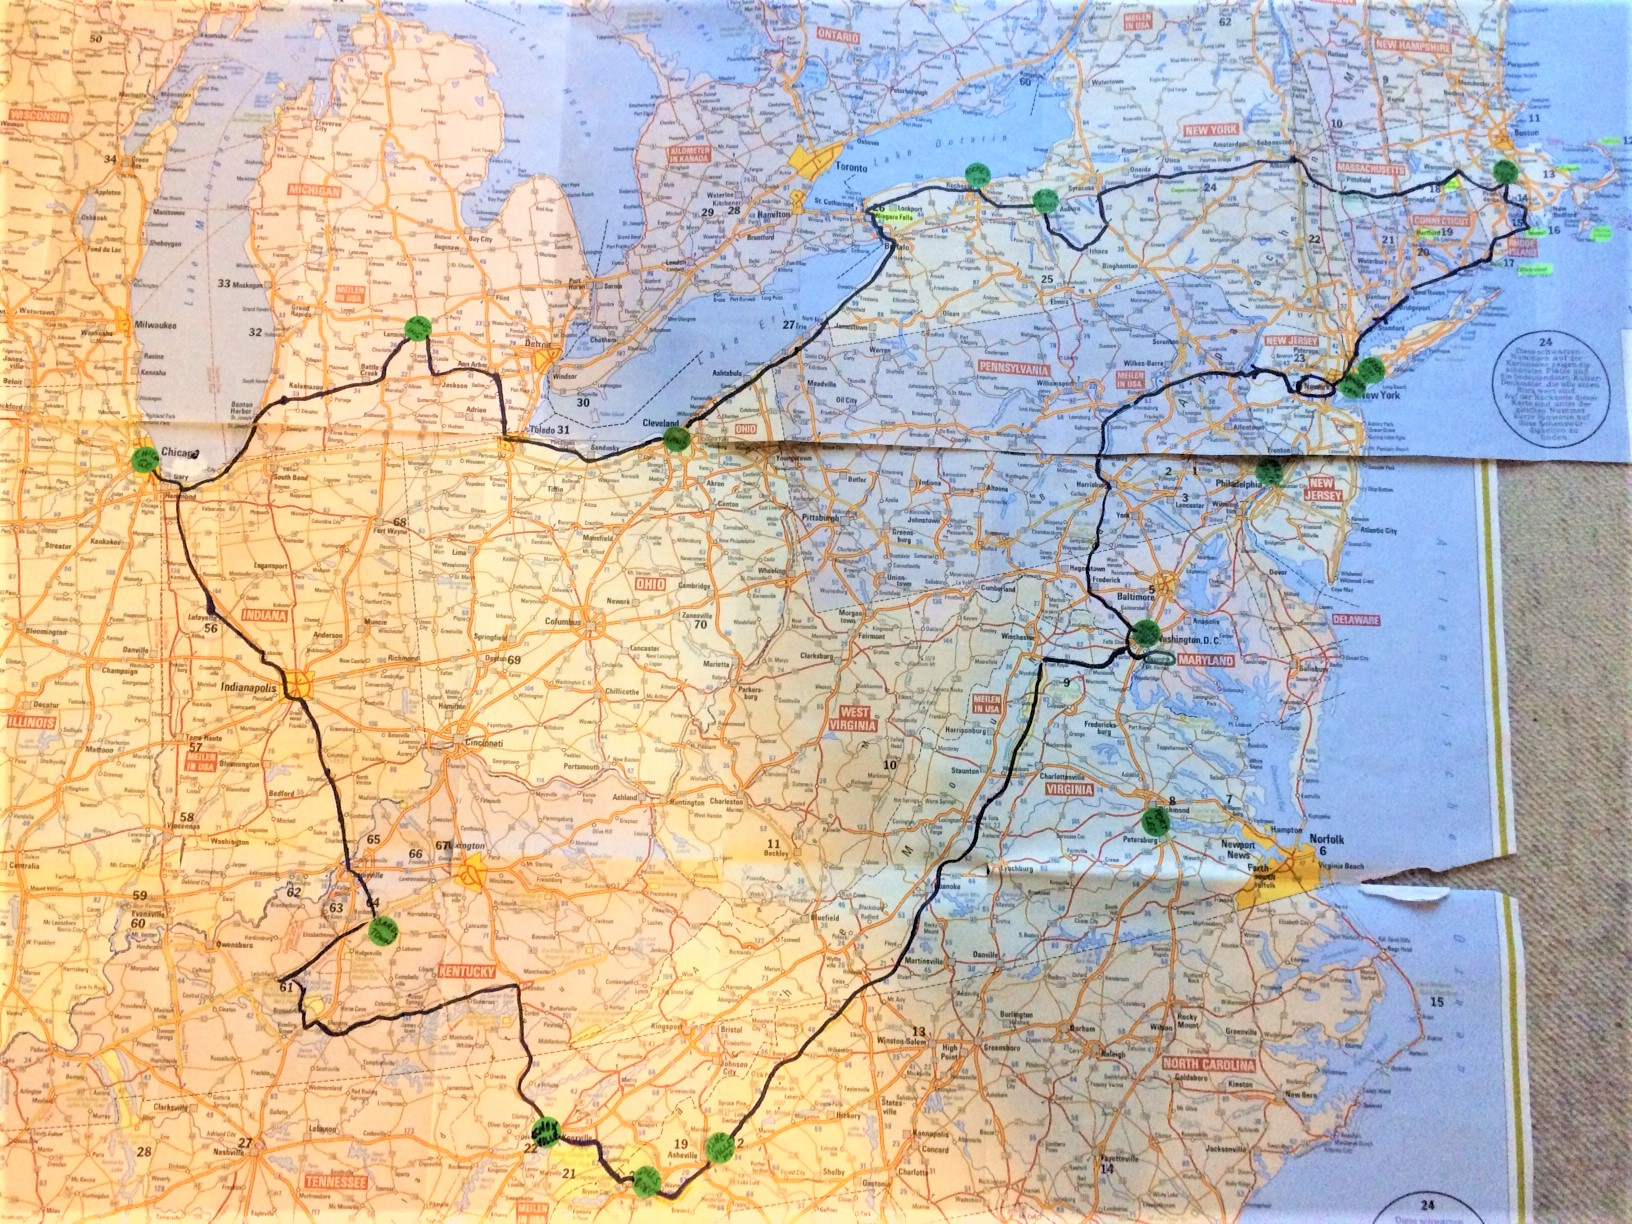 The route of Marianne Wimmer to the women's museums in the USA